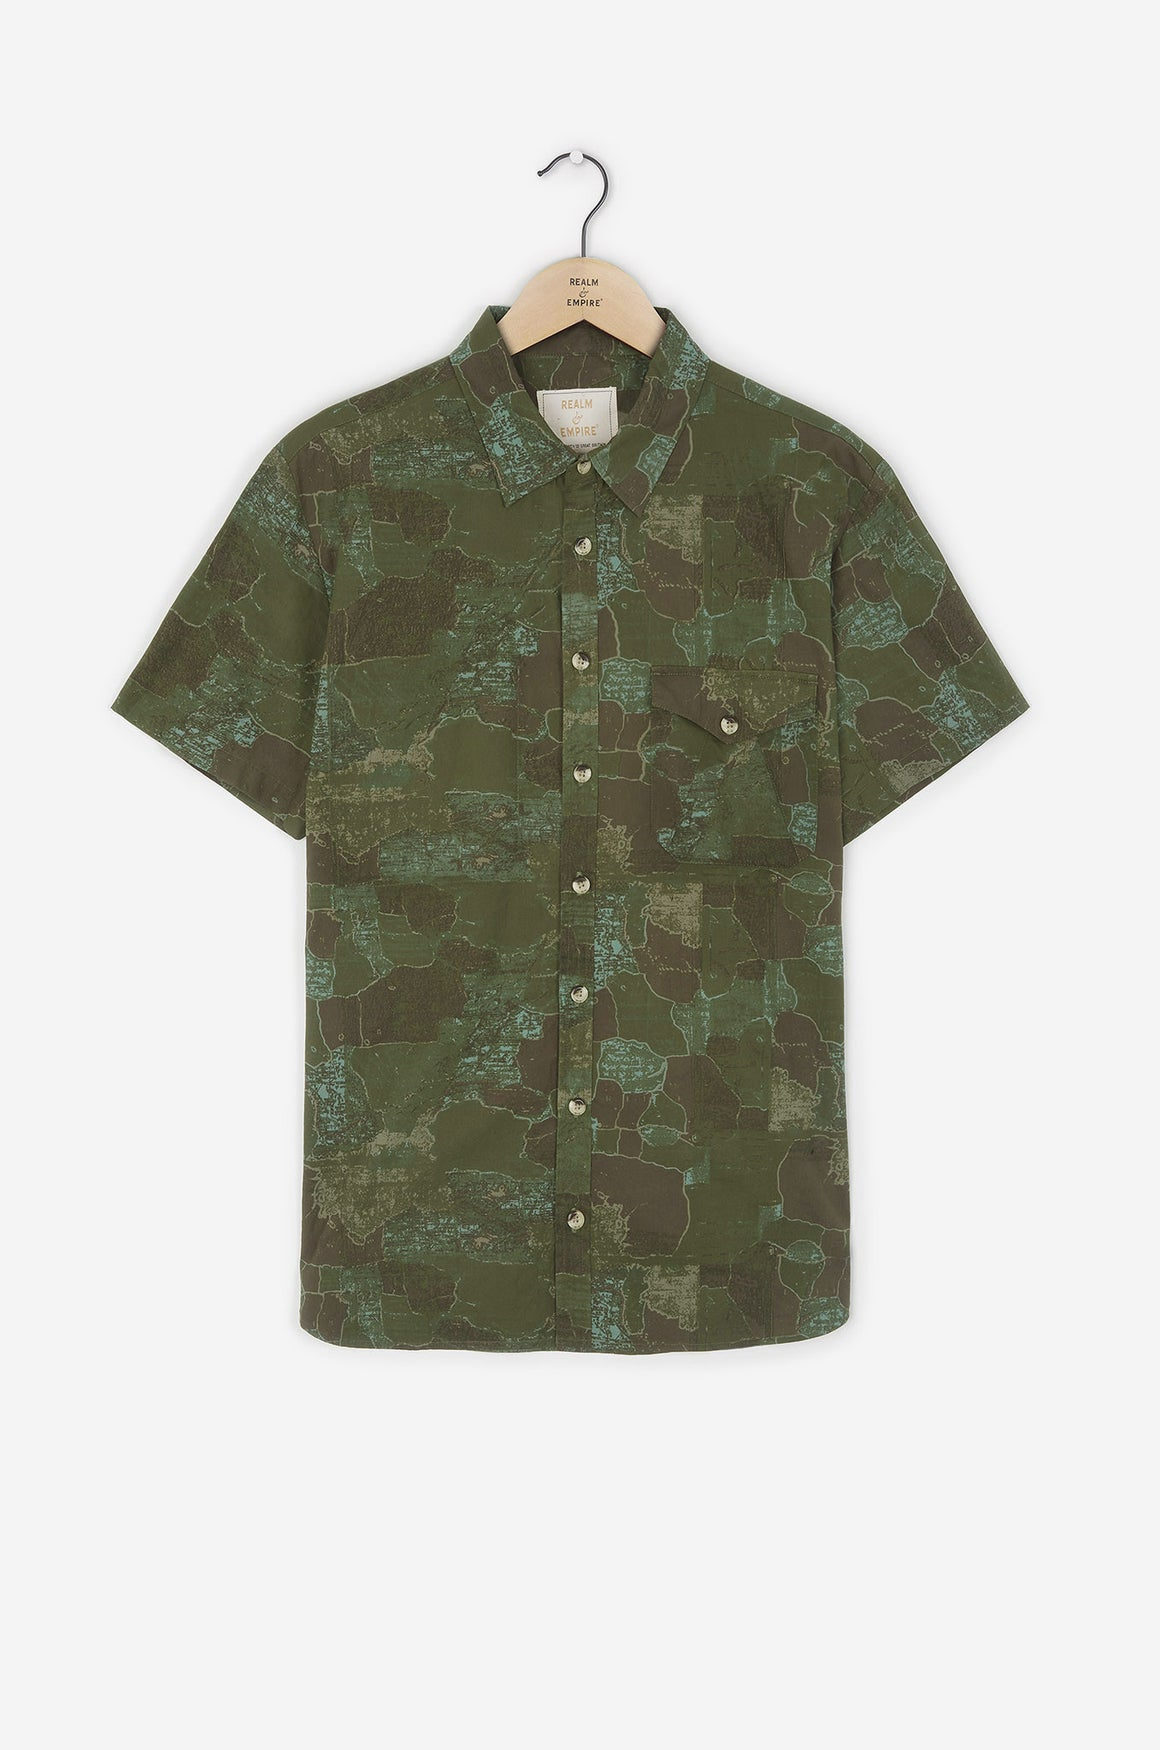 Realm & Empire Short Sleeve Archive Shirt | Camo